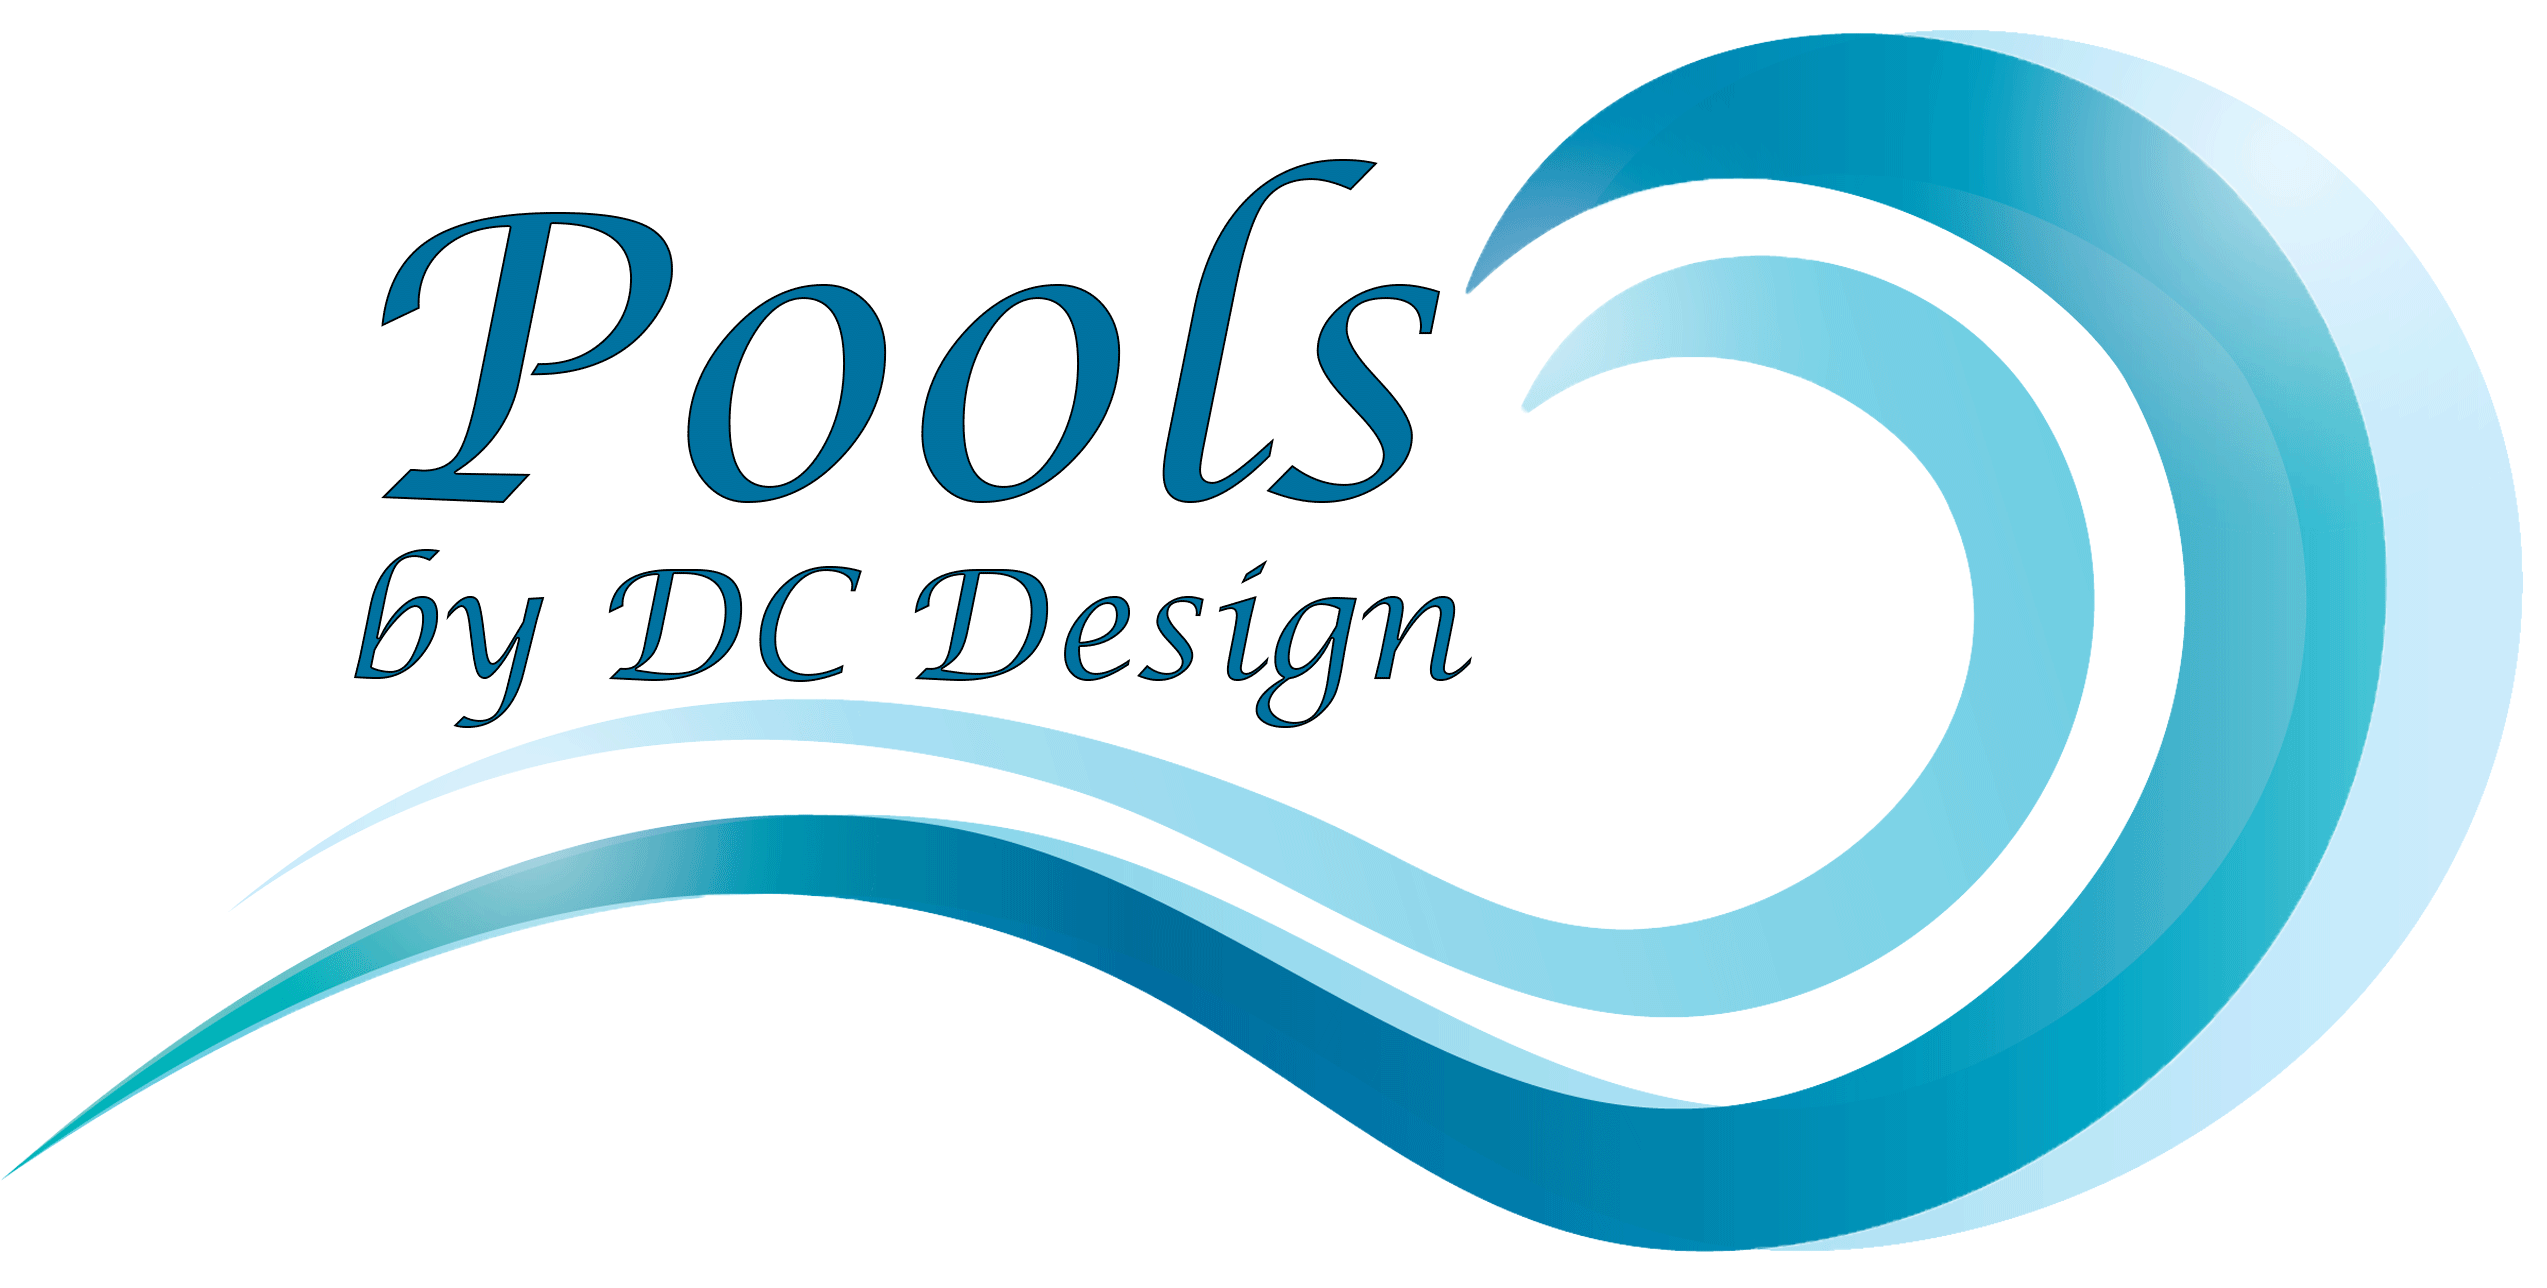 Pools by DC Design